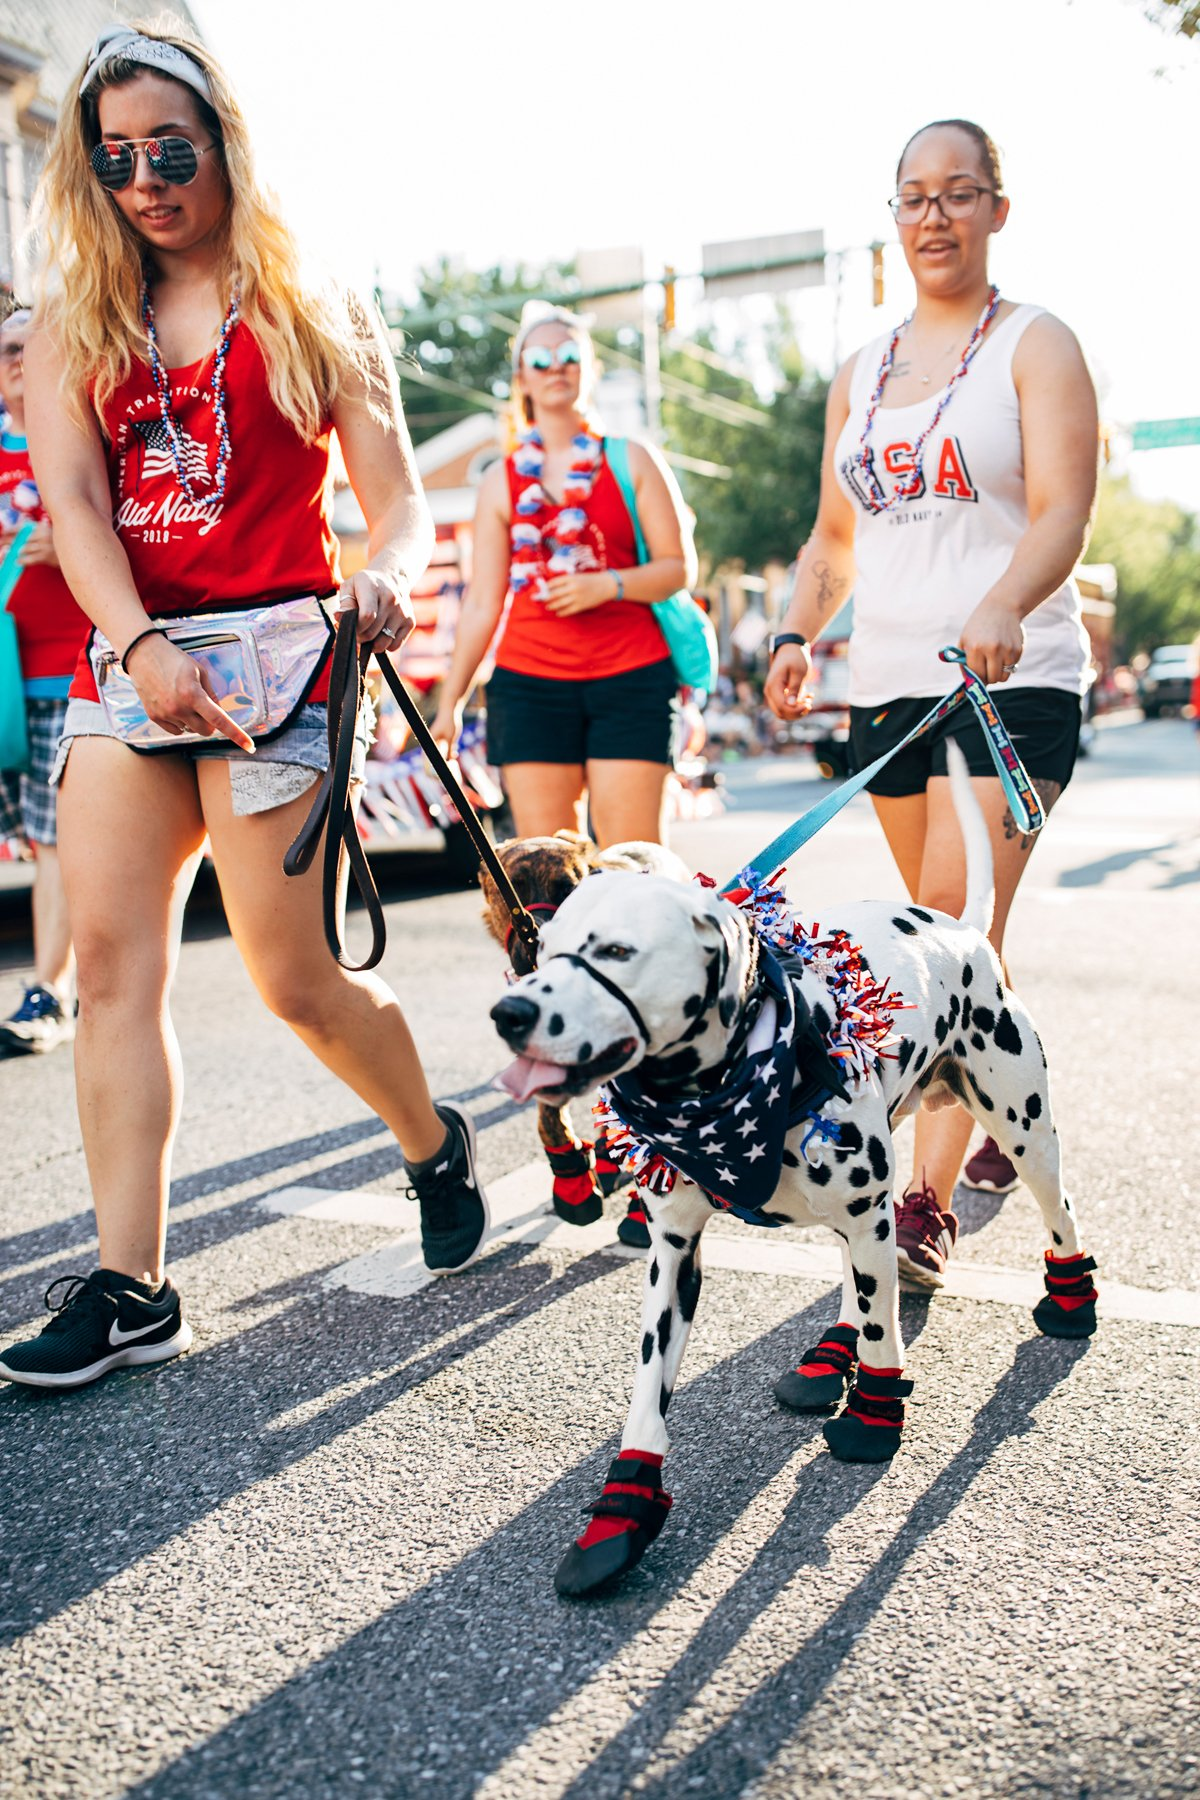 walkinlove_fourthofjuly_lititzspringspark_2018-45.jpg